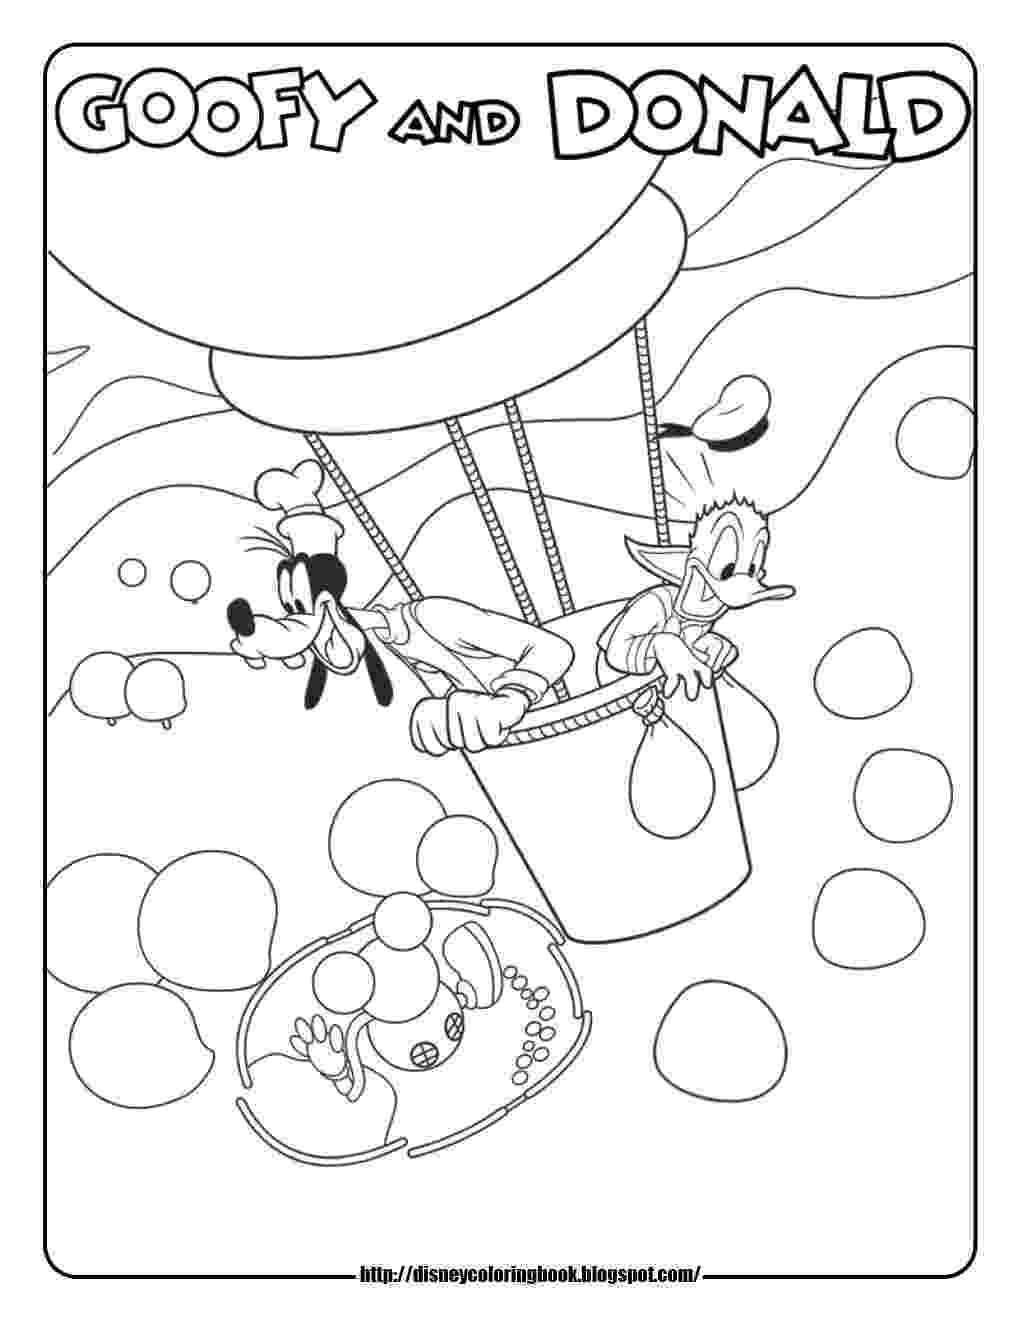 mickey mouse clubhouse coloring sheets mickey mouse clubhouse 1 free disney coloring sheets coloring sheets mickey clubhouse mouse